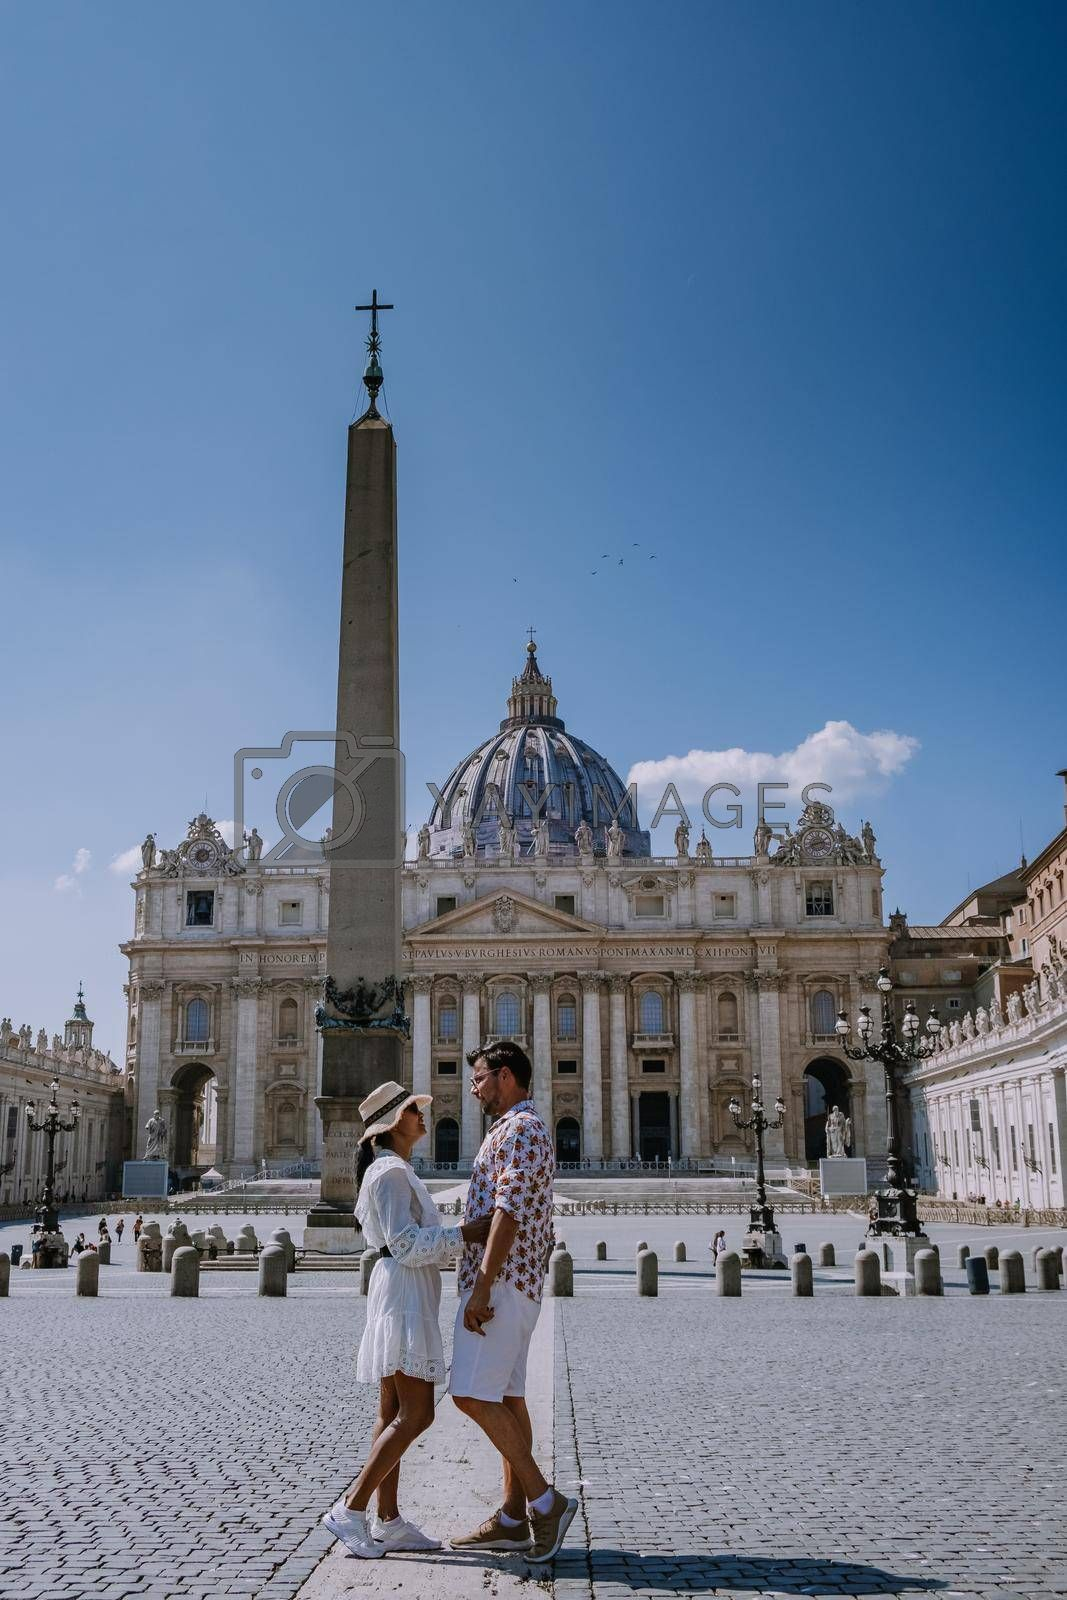 St. Peter's Basilica in the morning from Via della Conciliazione in Rome. Vatican City Rome Italy. Rome architecture and landmark. St. Peter's cathedral in Rome. Couple on city trip